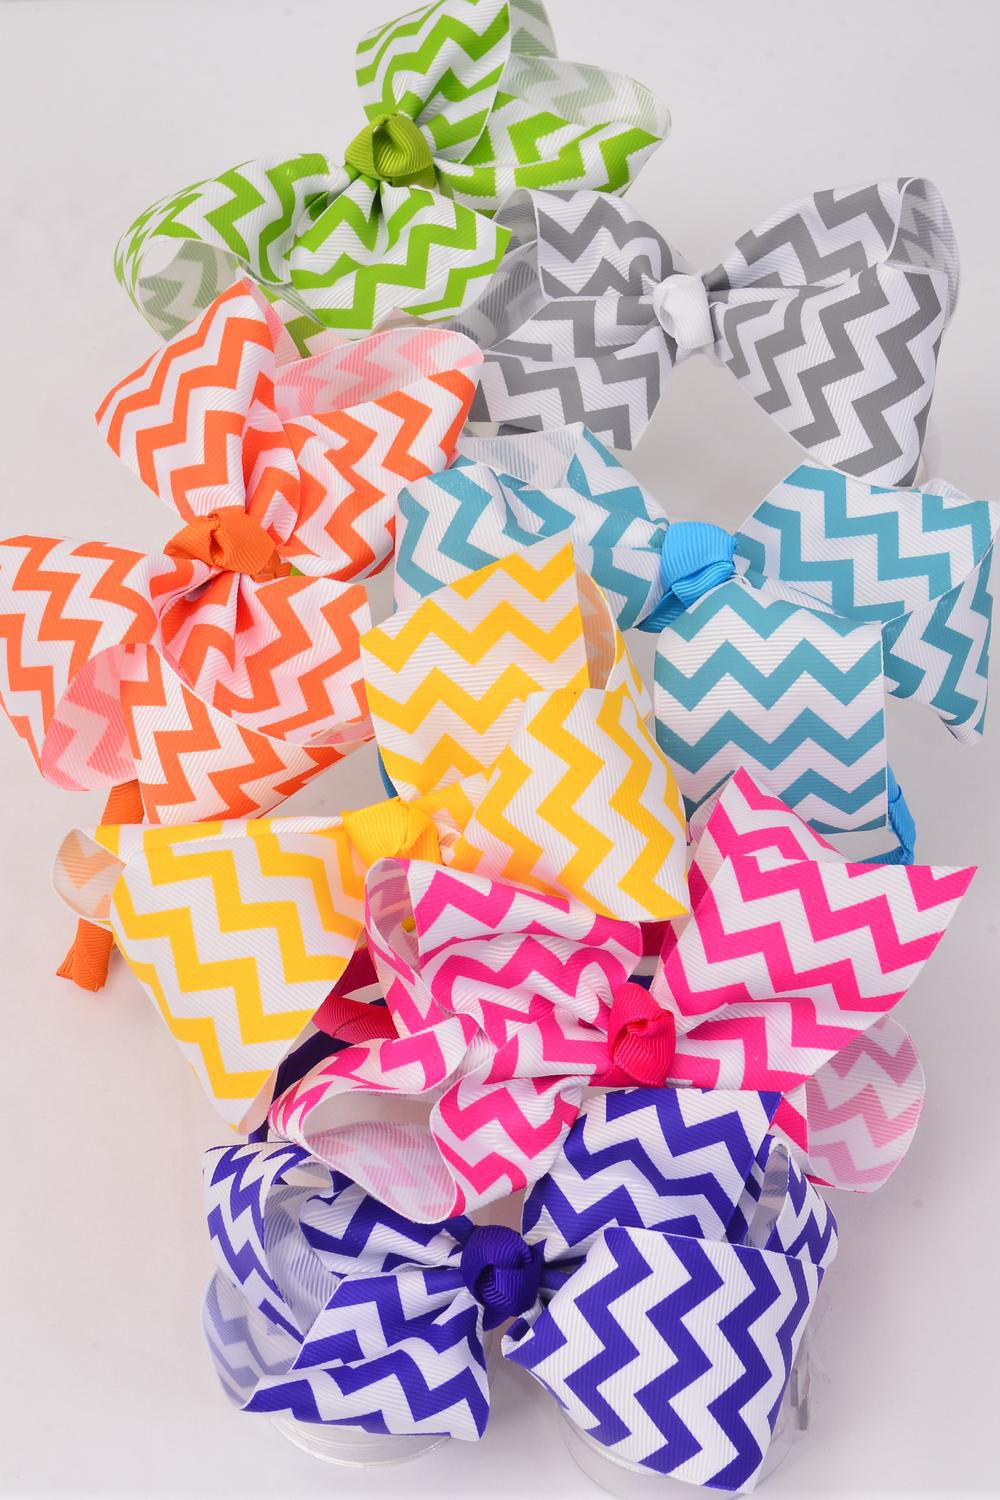 "Headband Horseshoe Jumbo Grosgrain Bow-tie Chevron Pattern Knot Citrus/DZ **Citrus** Bow-6""x 5"" Wide,2 Fuchsia,2 White,2 Blue,2 Purple,2 Yellow,1 Lime,1 Orange Mix,Display Card & UPC Code,Clear Box"